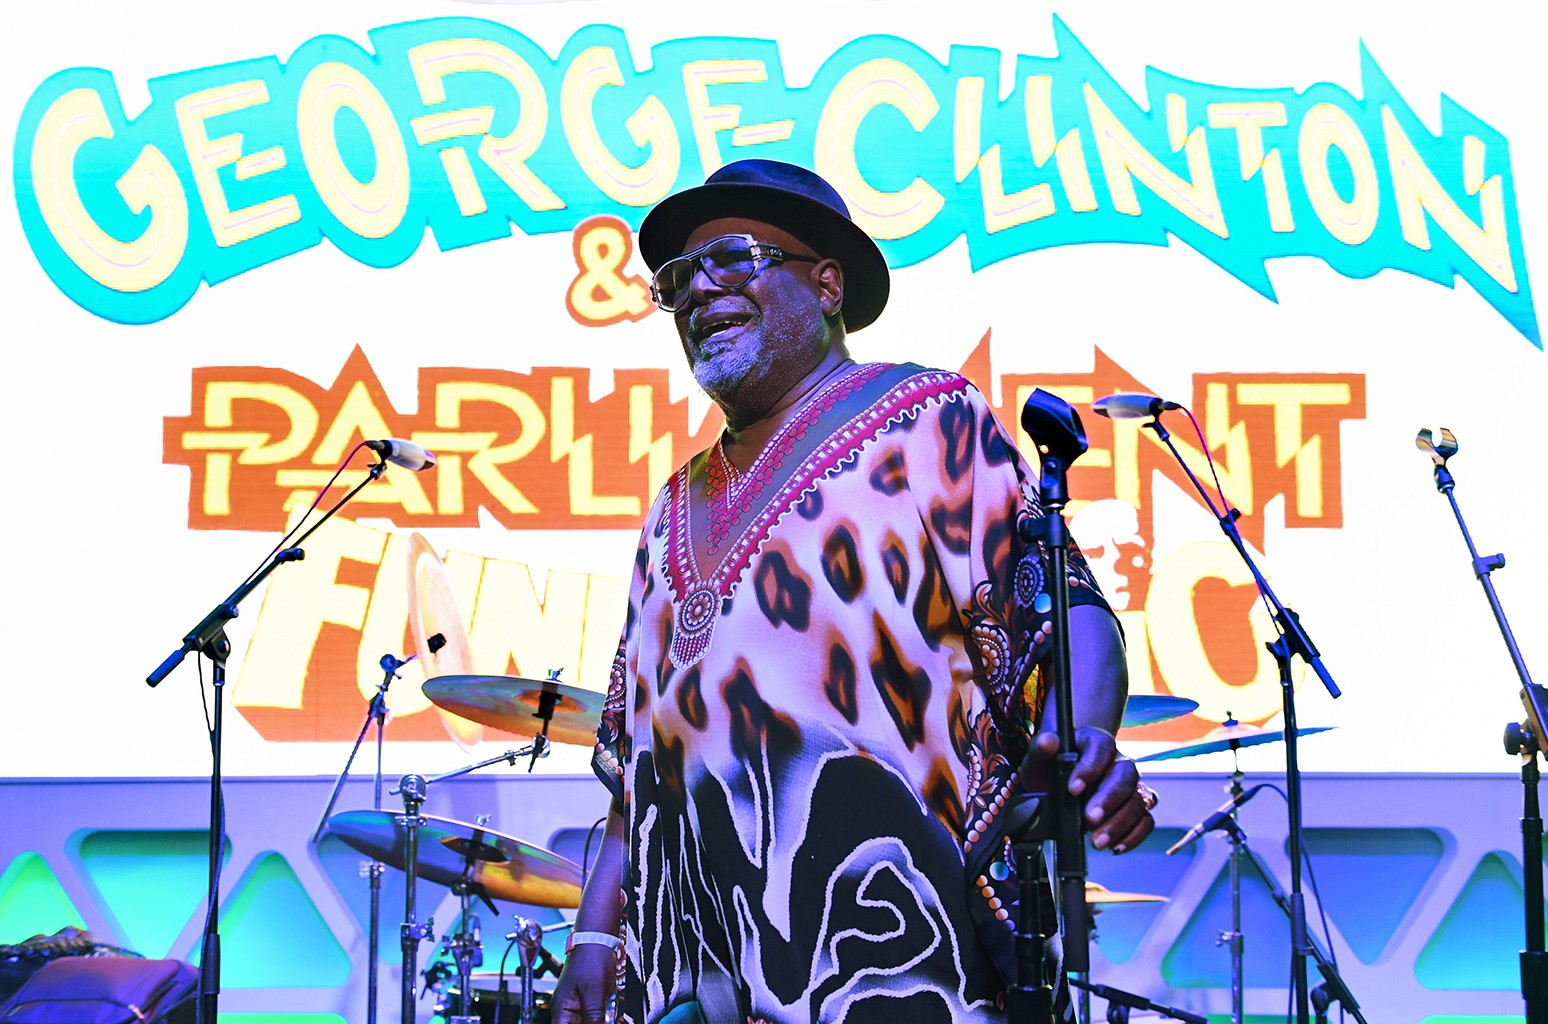 George Clinton performs at Heineken House Ultimate House Party during day 2 of Coachella Valley Music and Arts Festival on April 15, 2017 in Palm Springs, Calif.